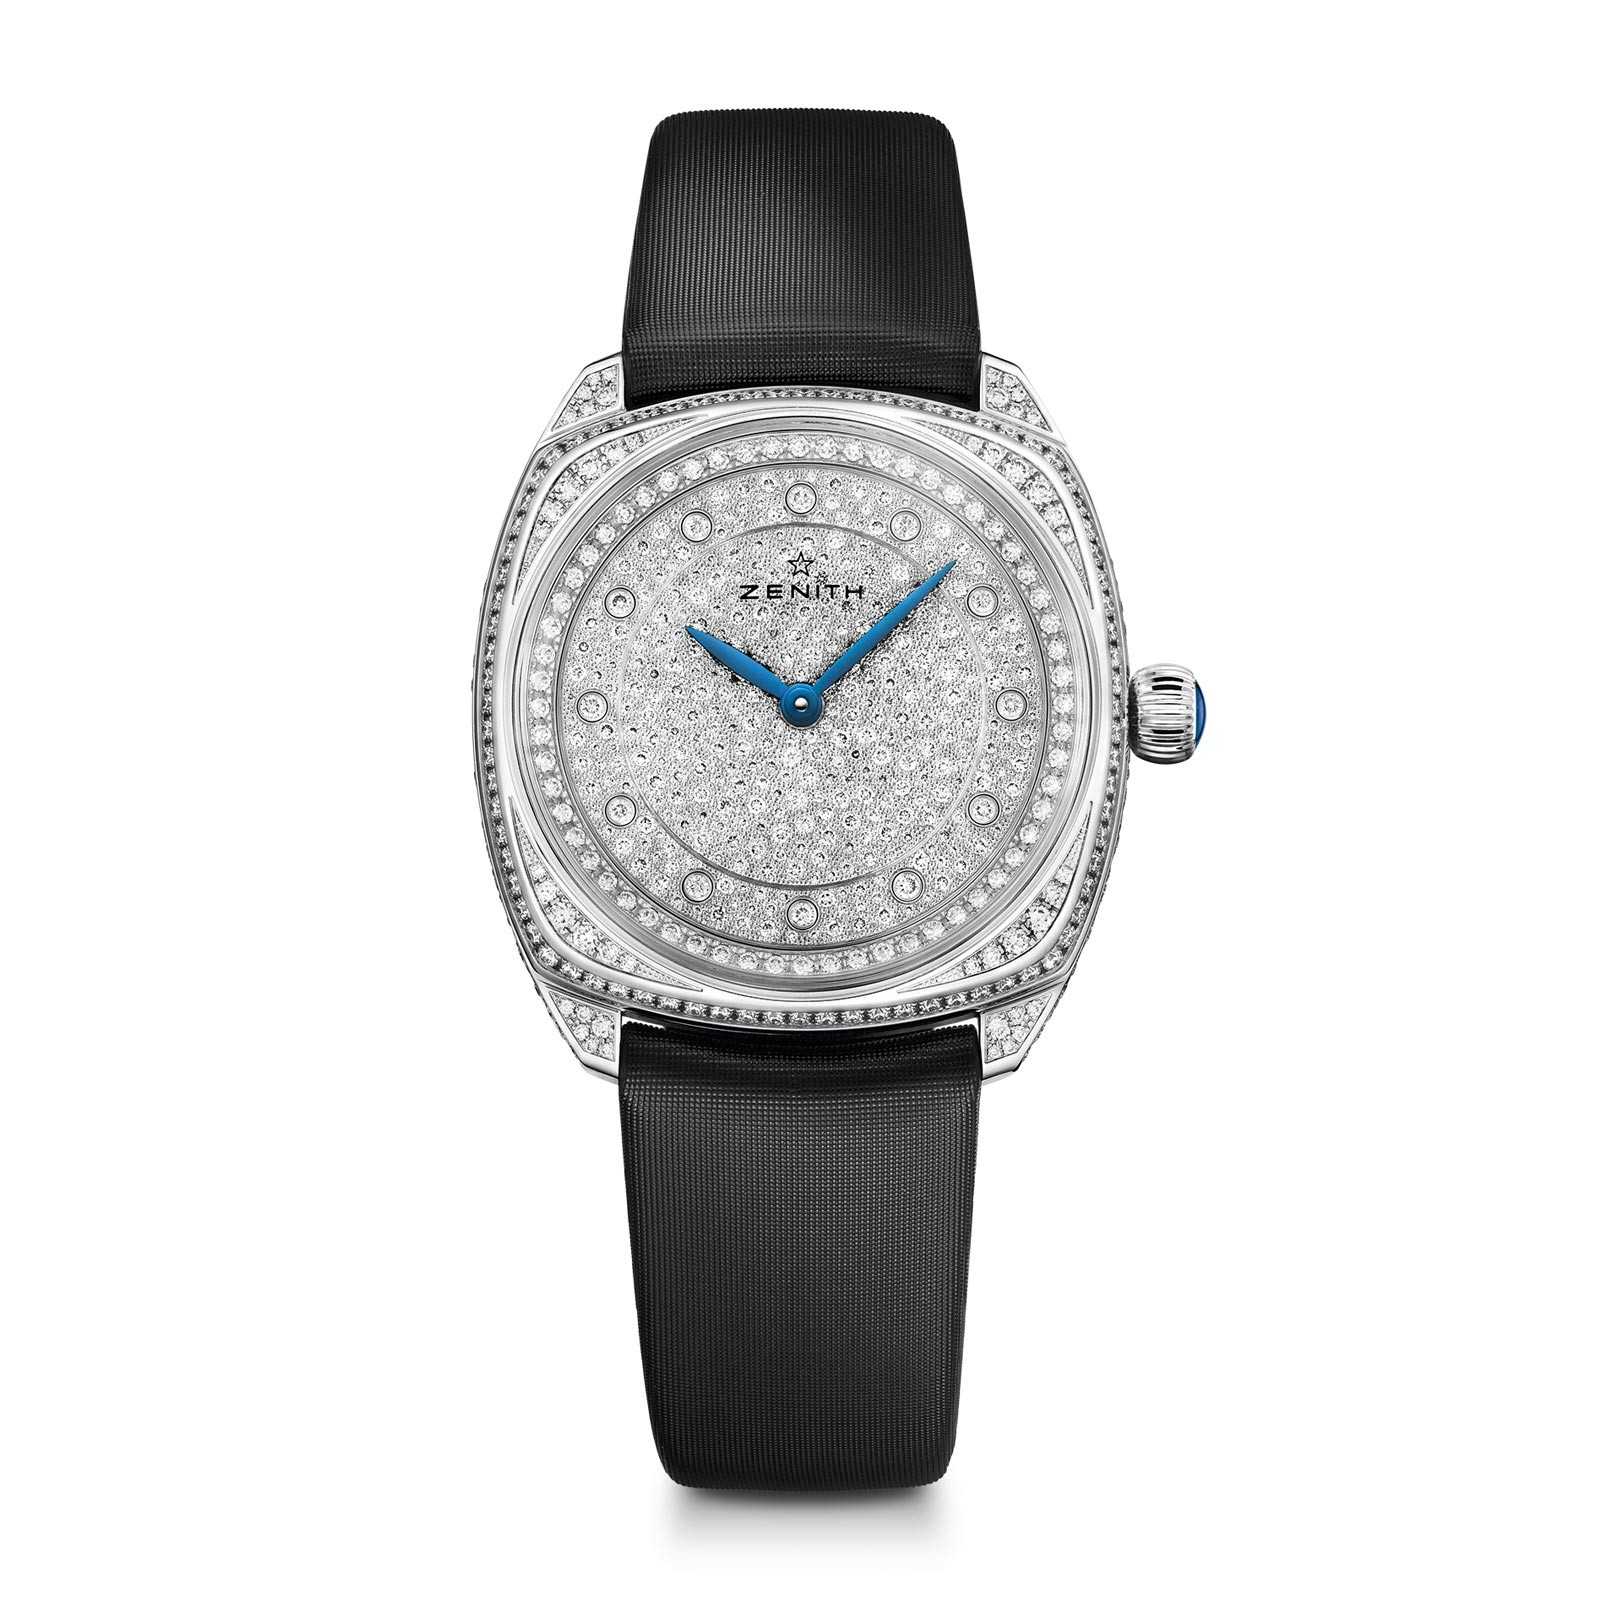 Zenith Star 33mm - White Gold Case, Dial entirely set with 2.71 carats of diamonds